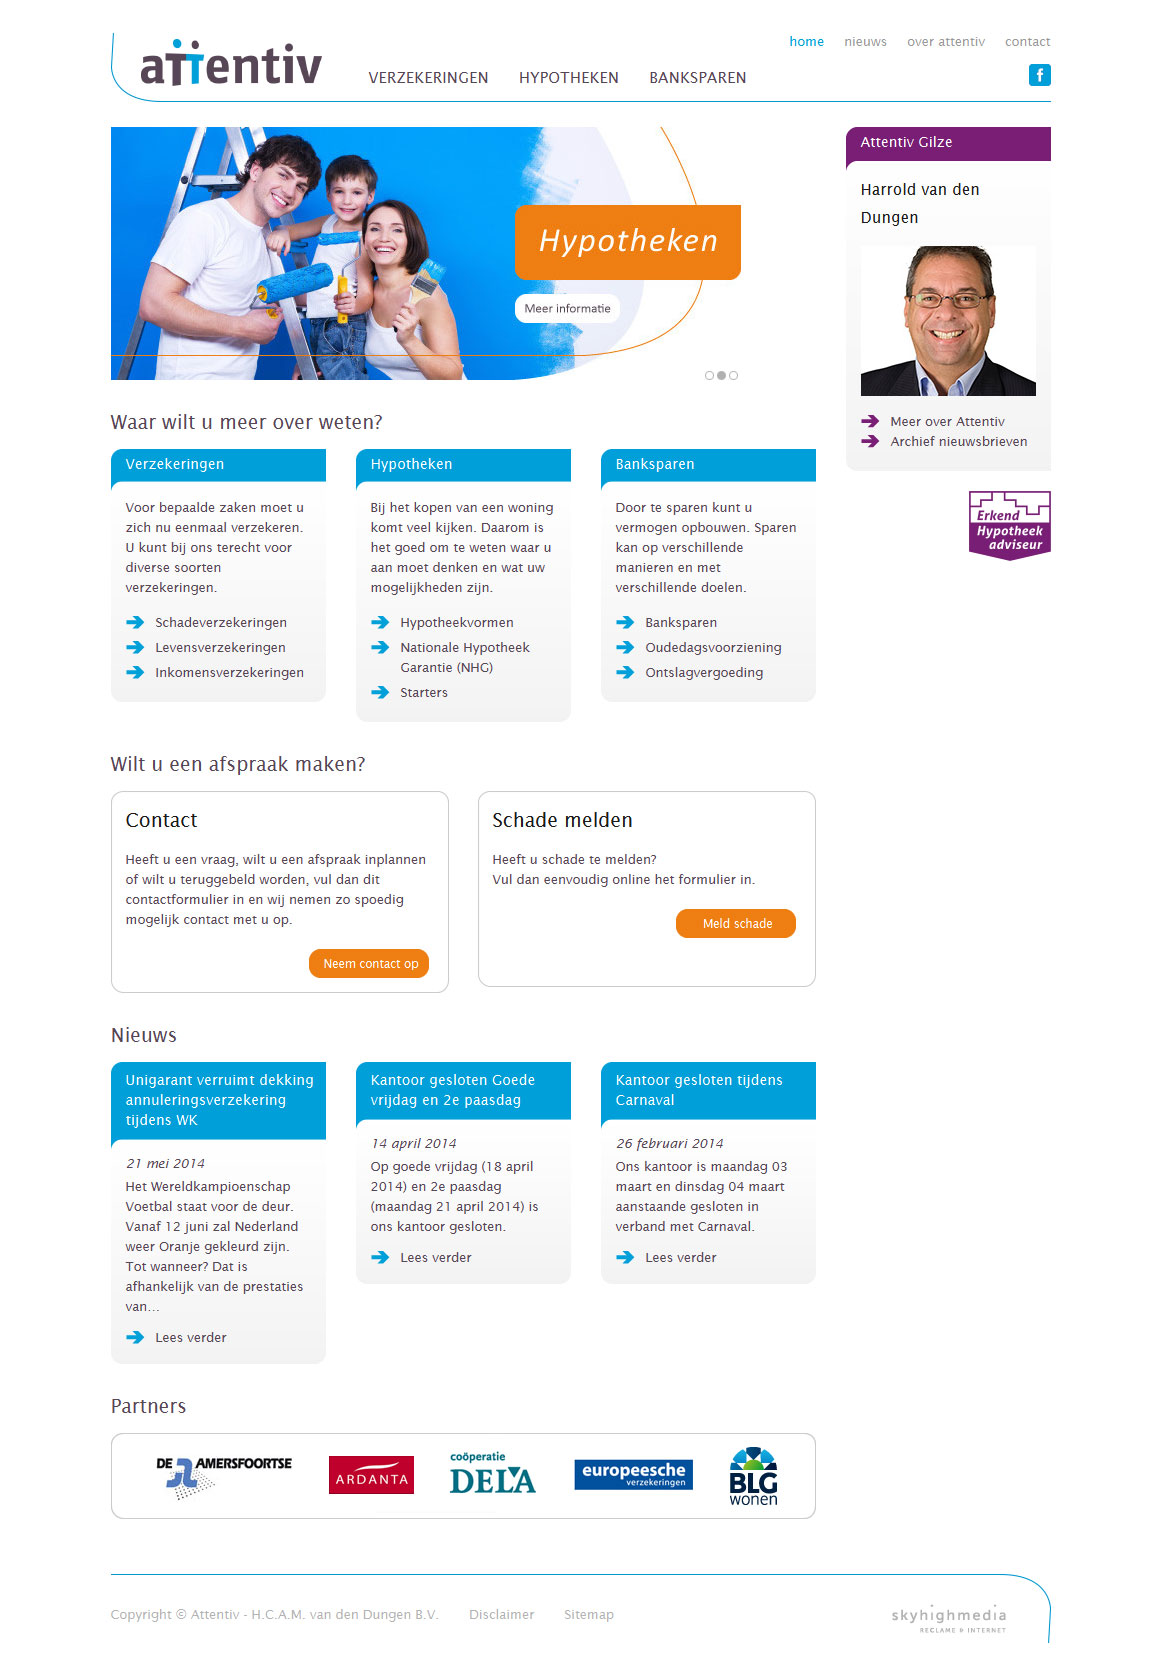 attentiv-vddungen_website1